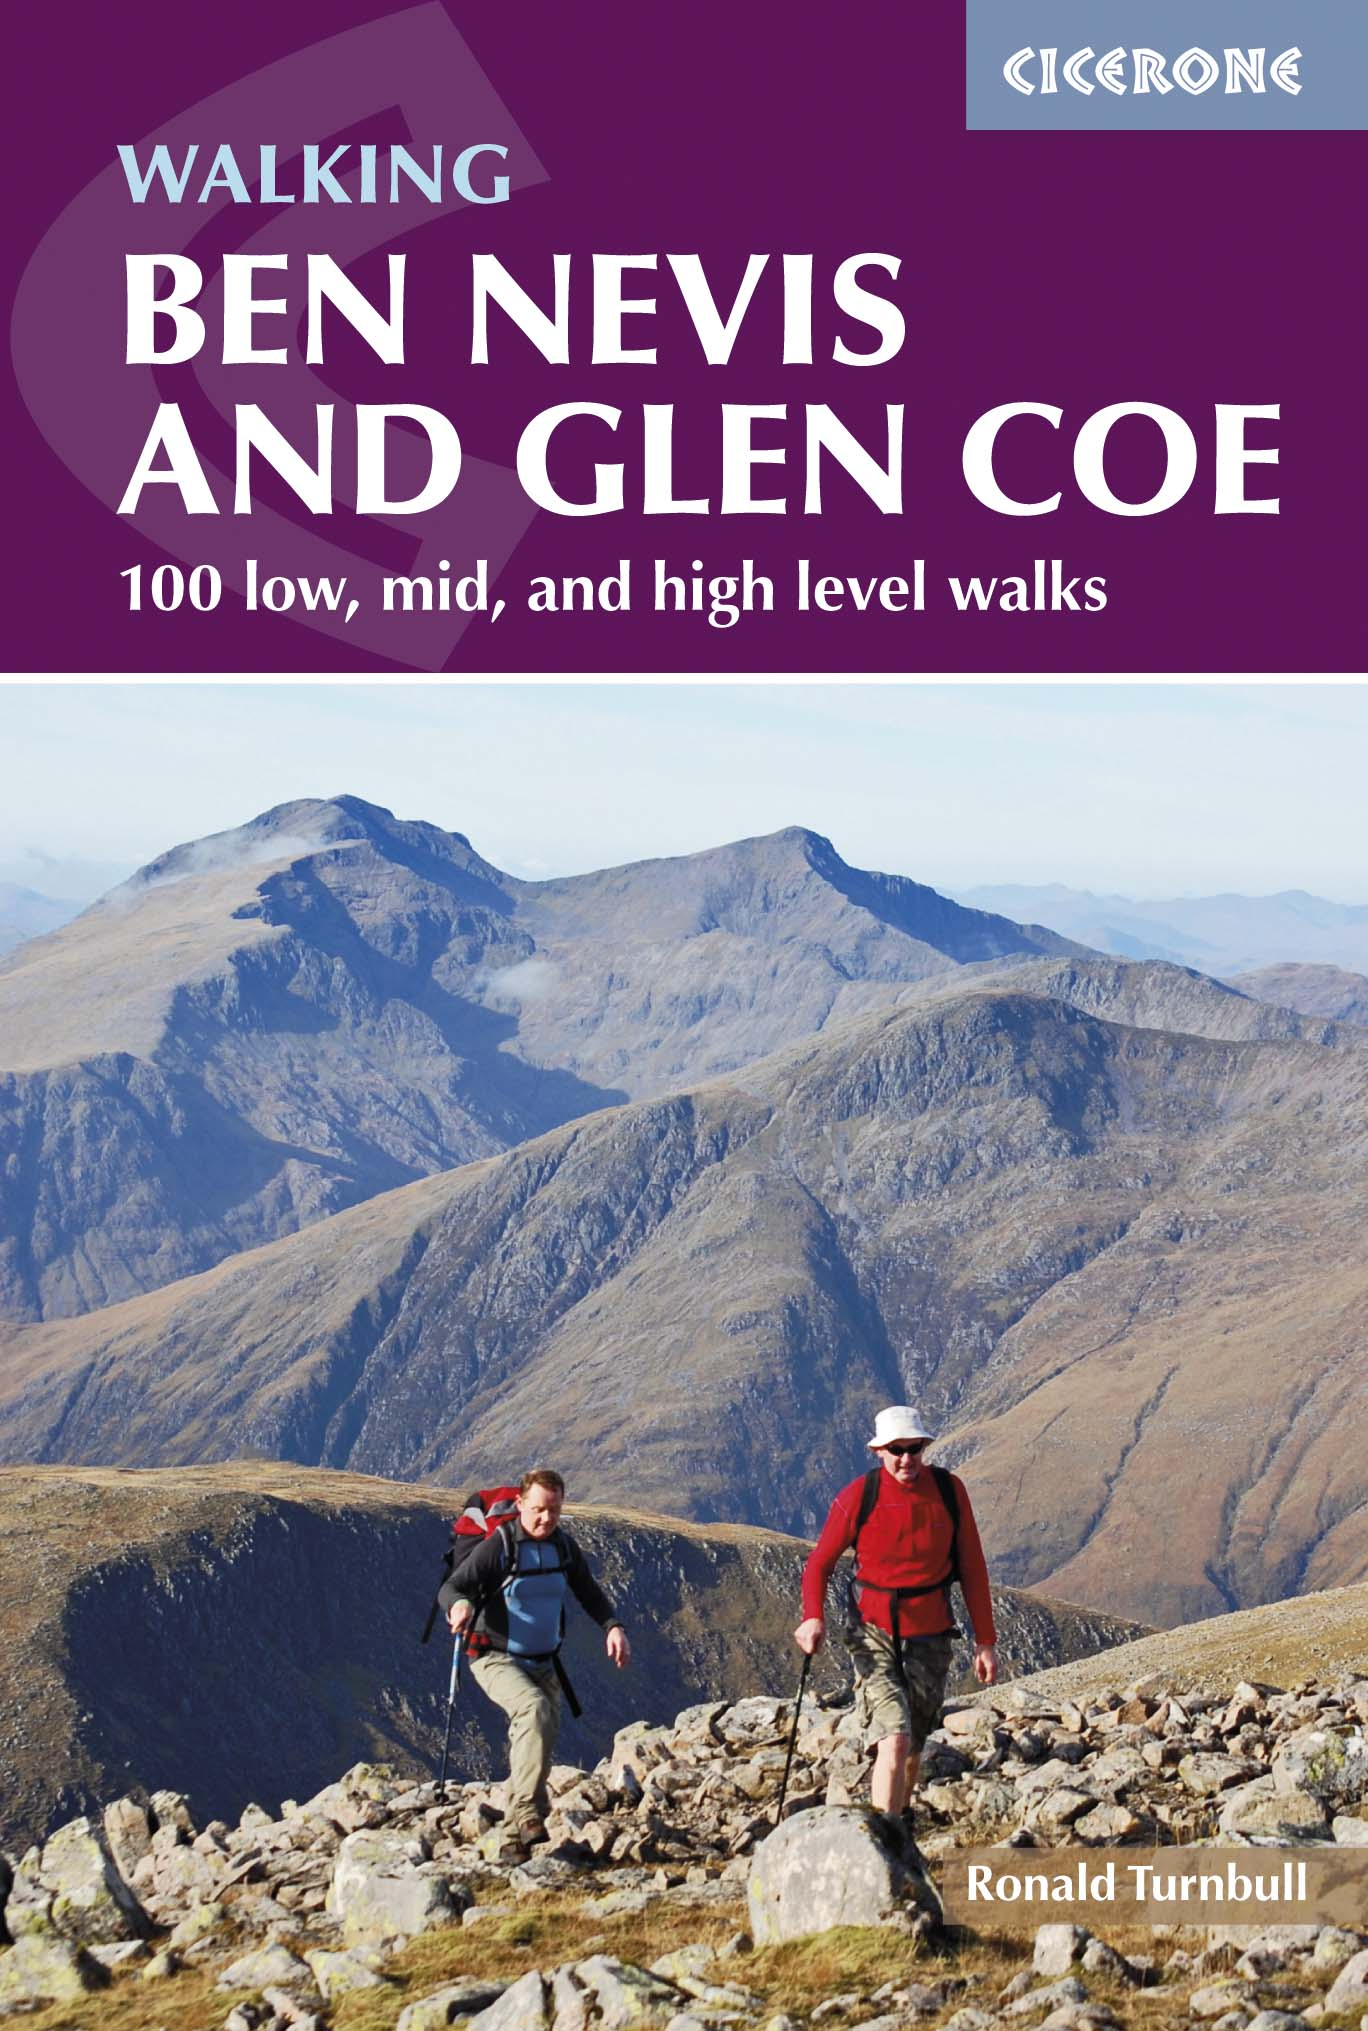 Walking Ben Nevis and Glen Coe